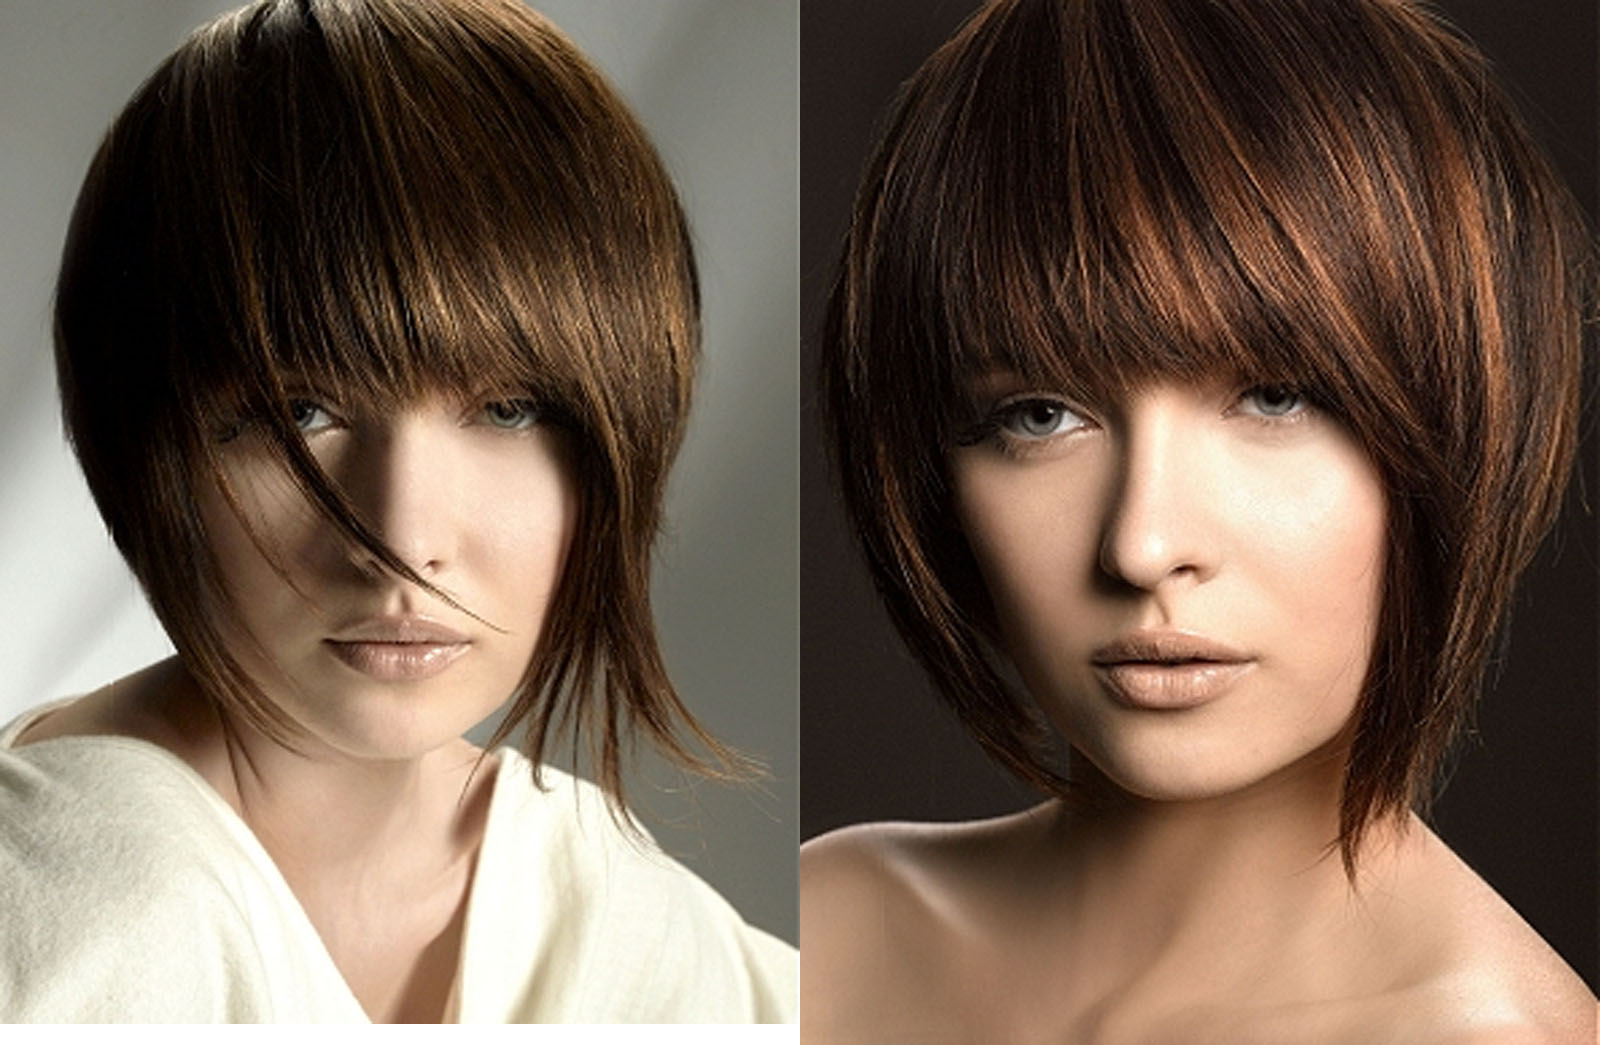 Pictures of bob hairstyles for women bob hairstyles for women urmus Choice Image